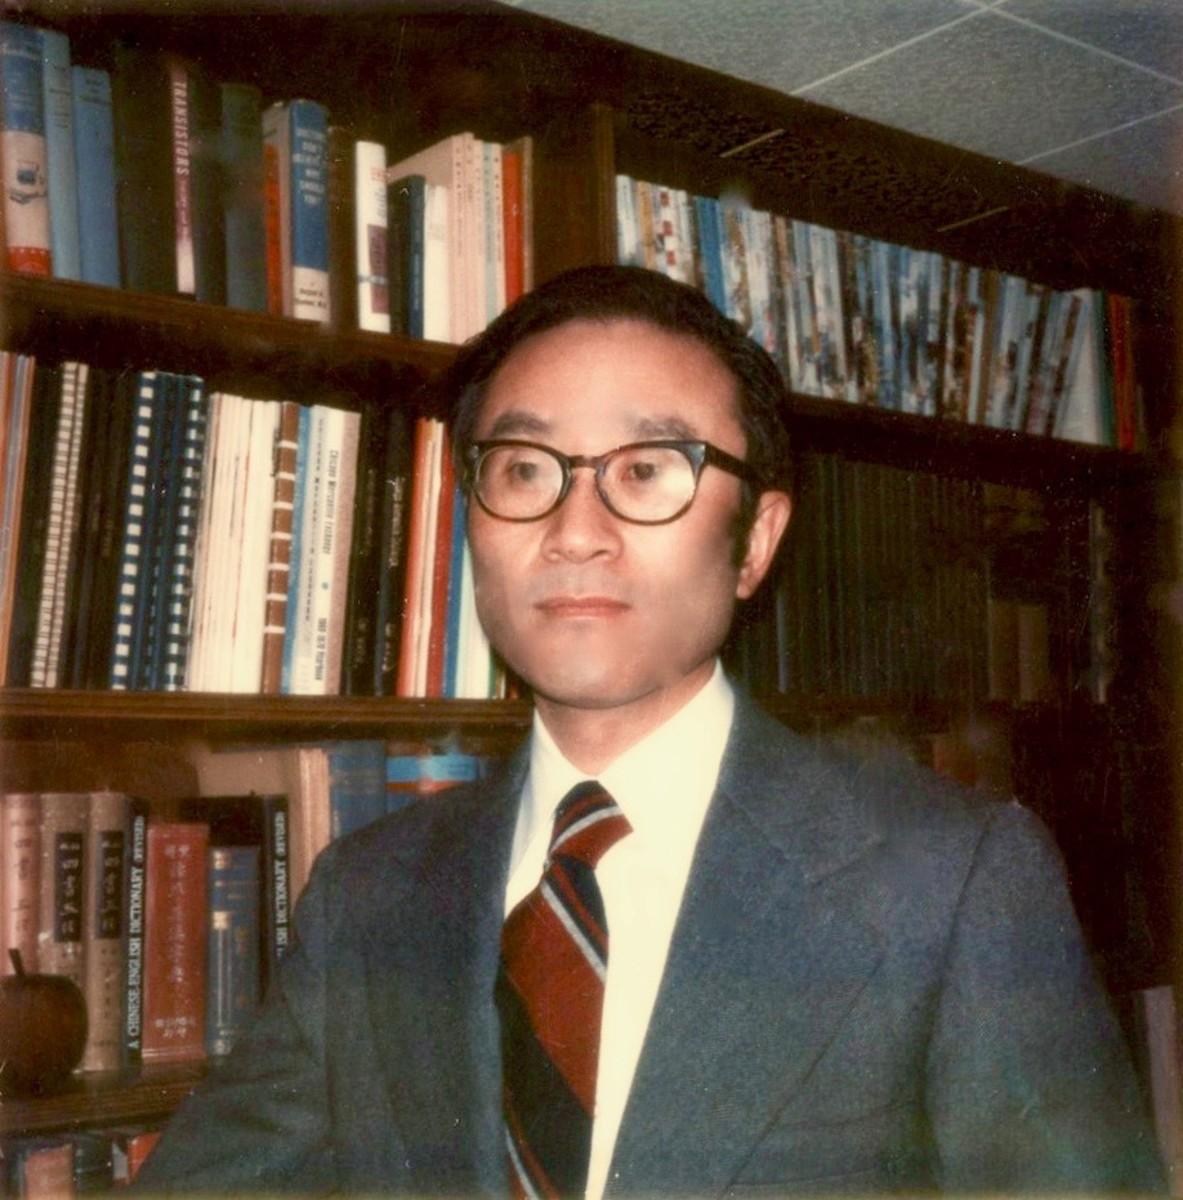 Nelson Chang clearly understood the advantage in having an extensive numismatic library.